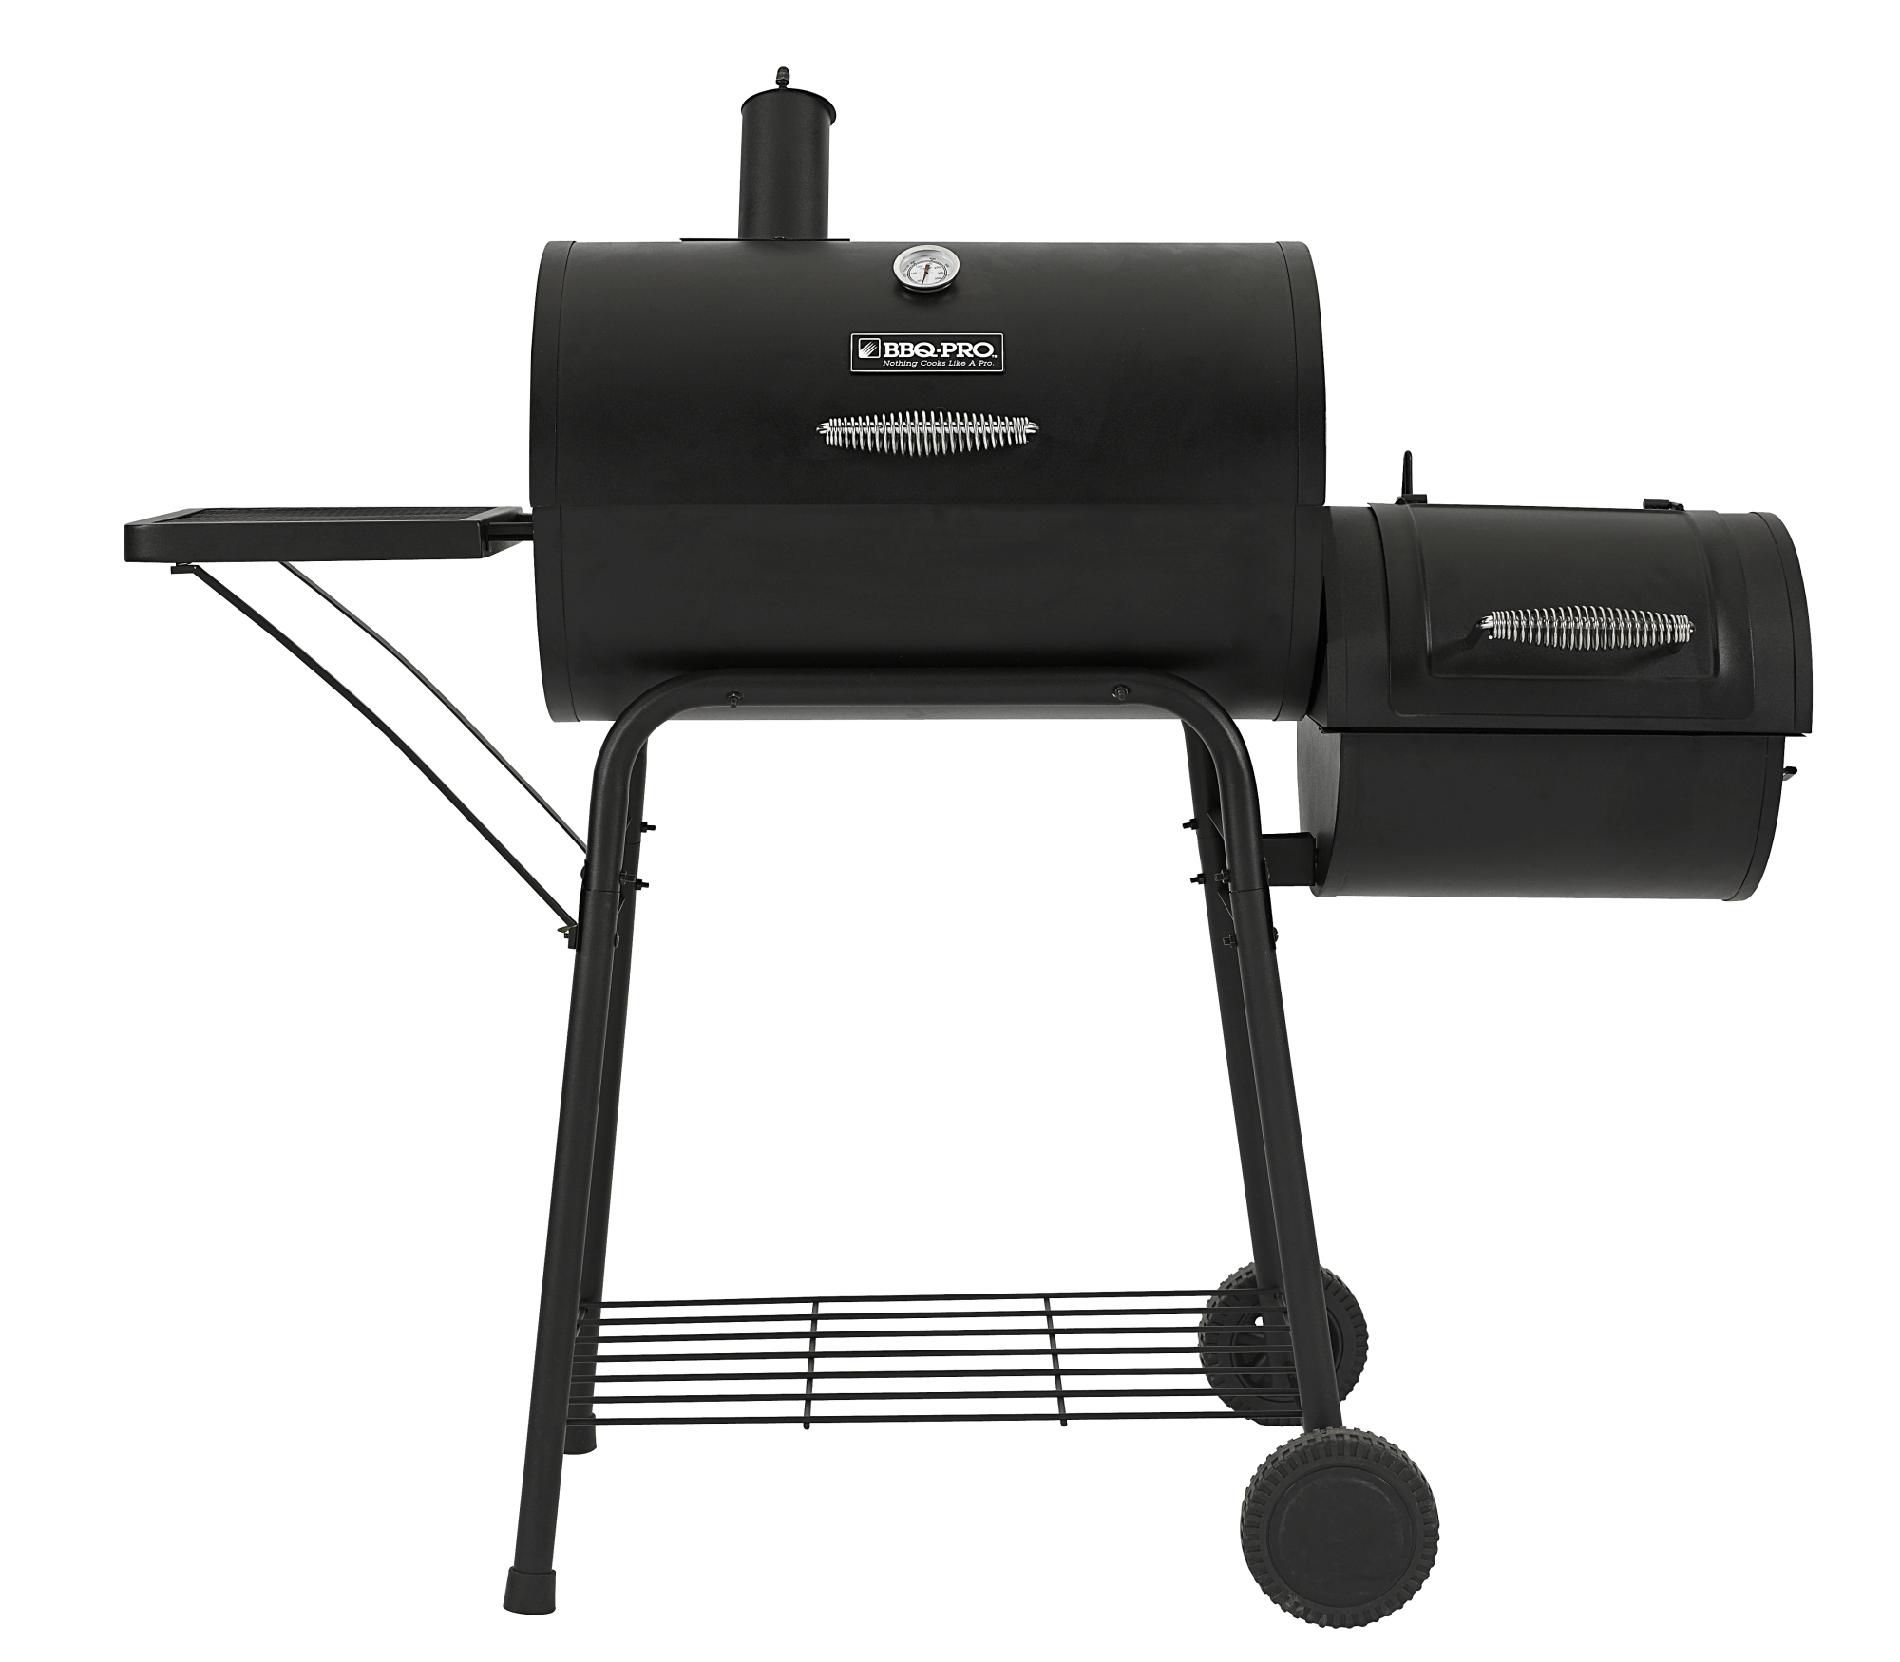 BBQ Pro  Barrel Smoker with Offset Firebox